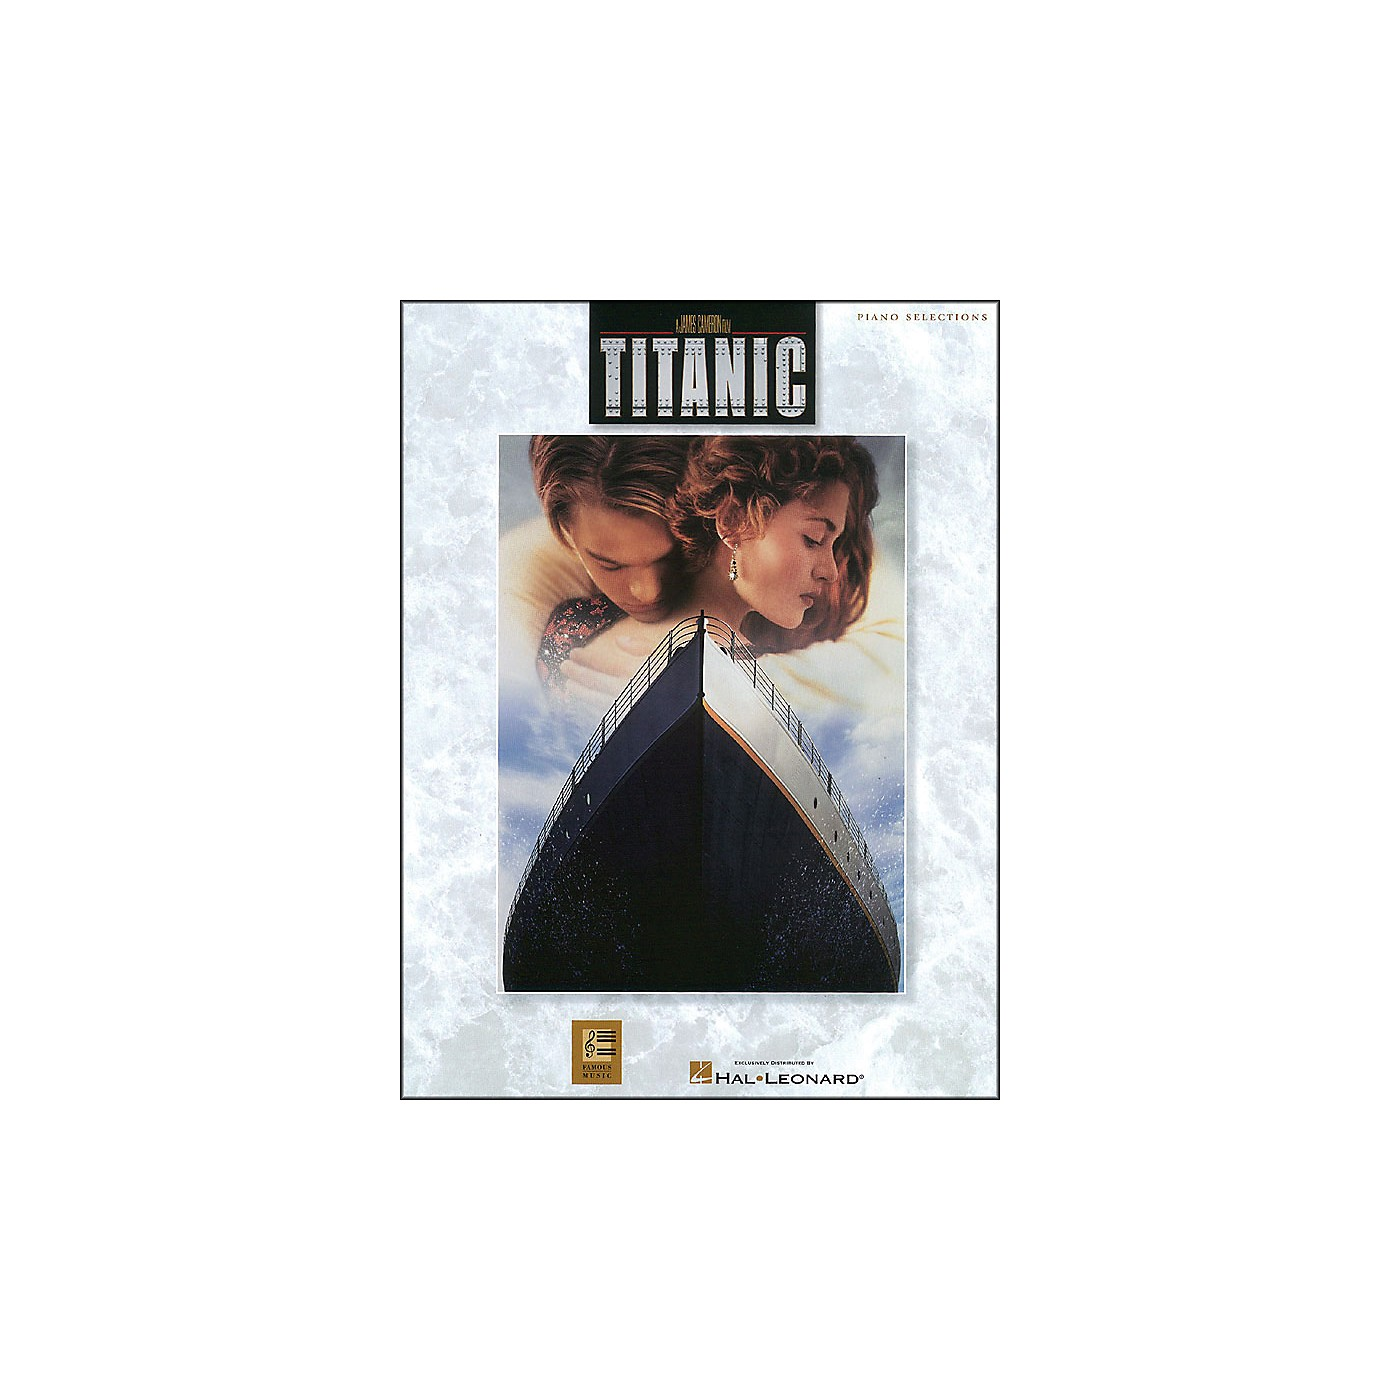 Hal Leonard Titanic Movie Selections arranged for piano, vocal, and guitar (P/V/G) thumbnail